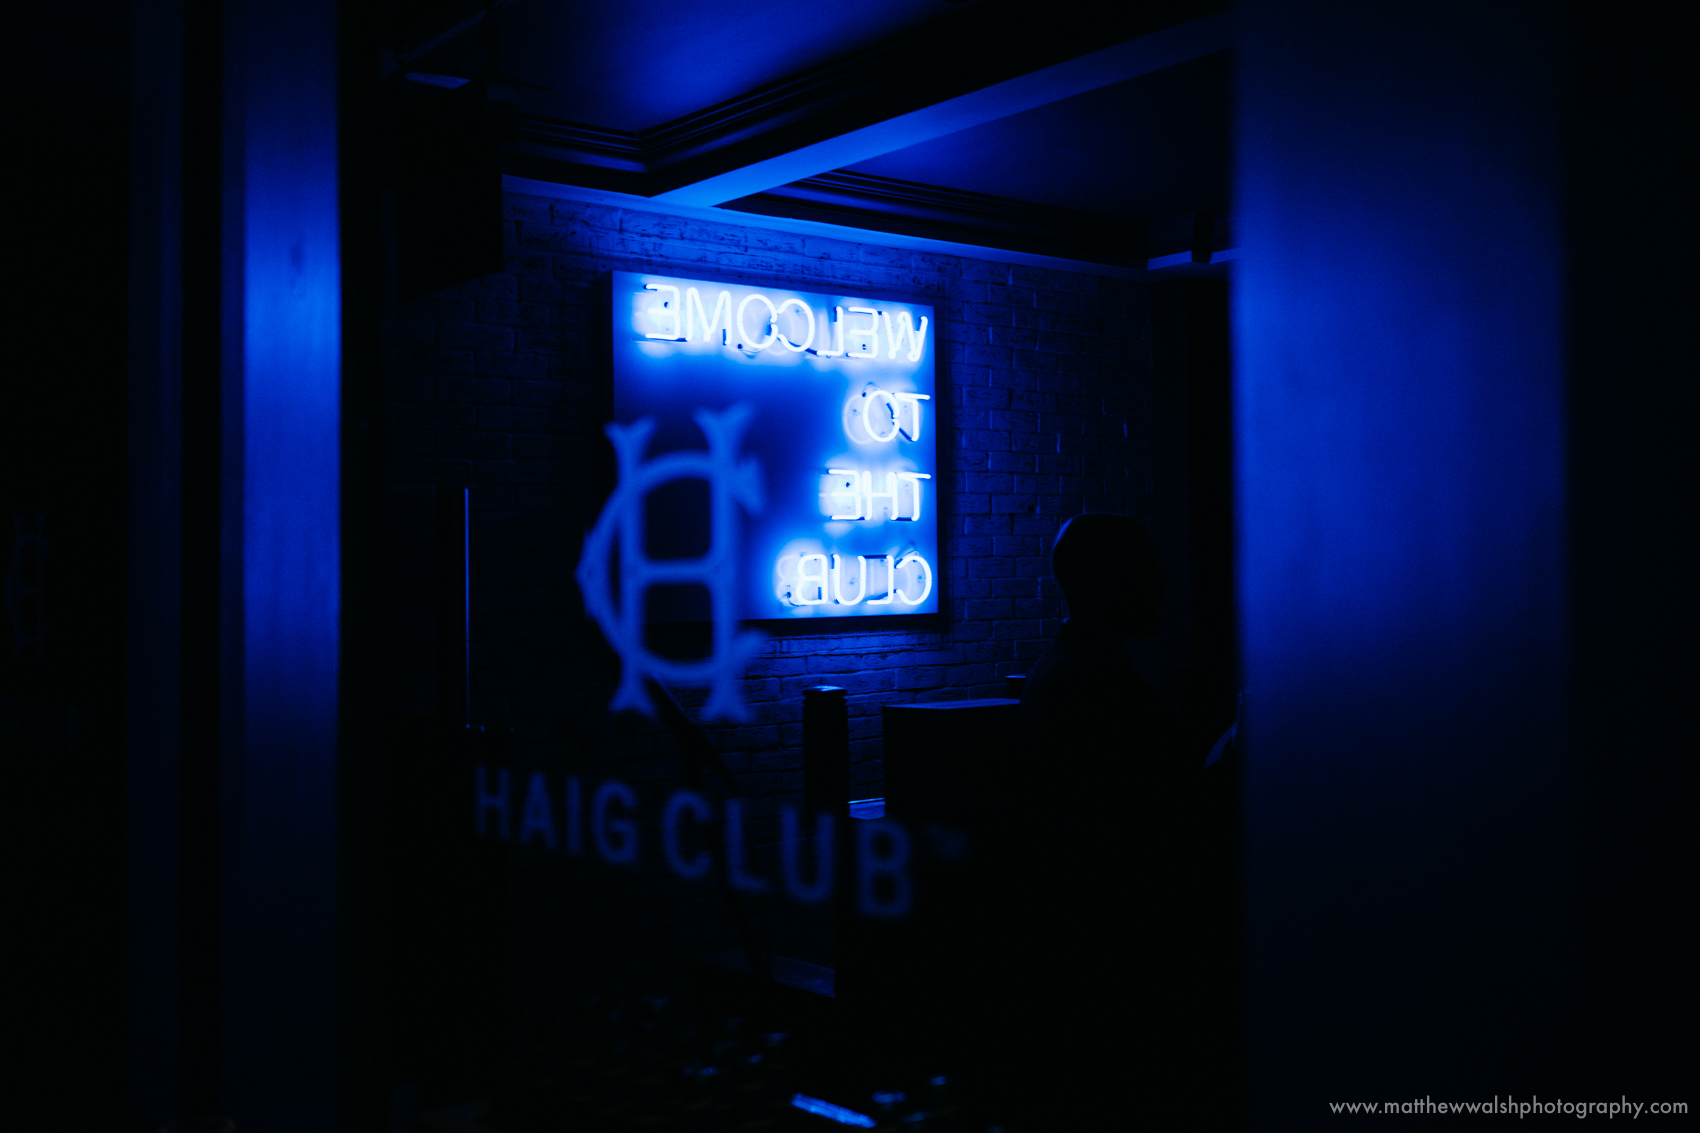 Welcome to the club - neon sign for the Haig Club Manchester